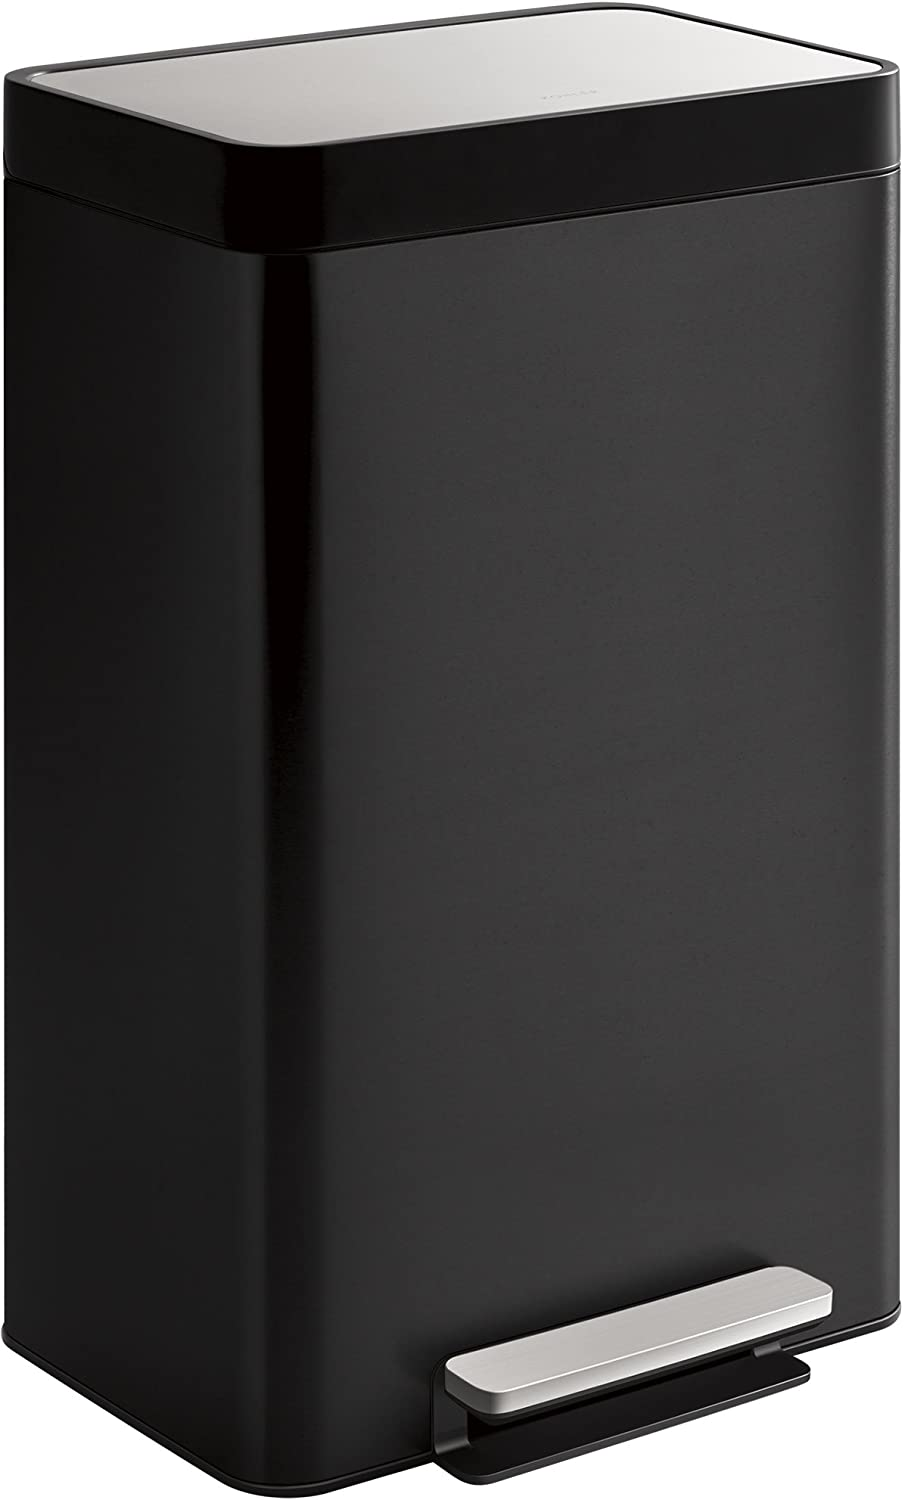 Kohler 20942-BST 8-Gallon Compact Black Stainless Step Trash Can in Black Stainless